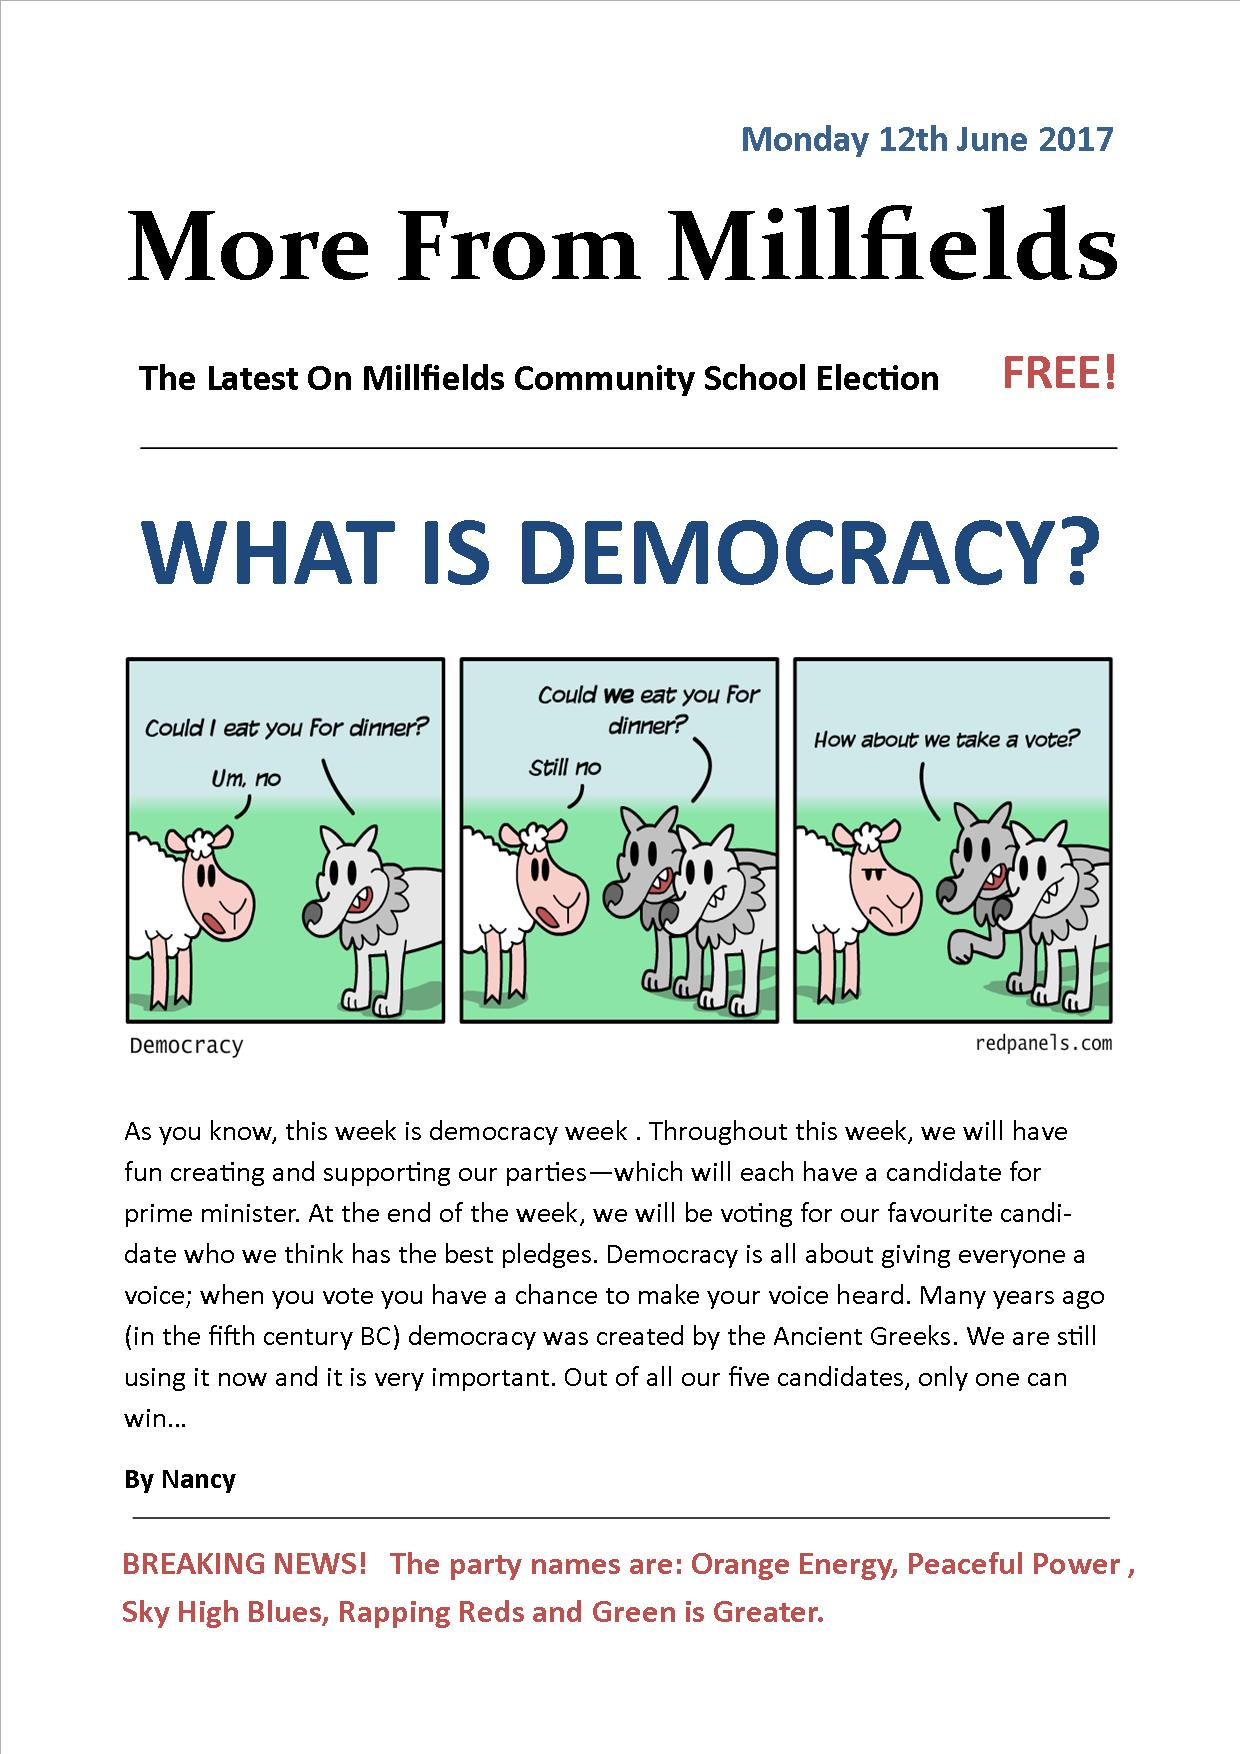 More From Millfields Democracy Week Monday